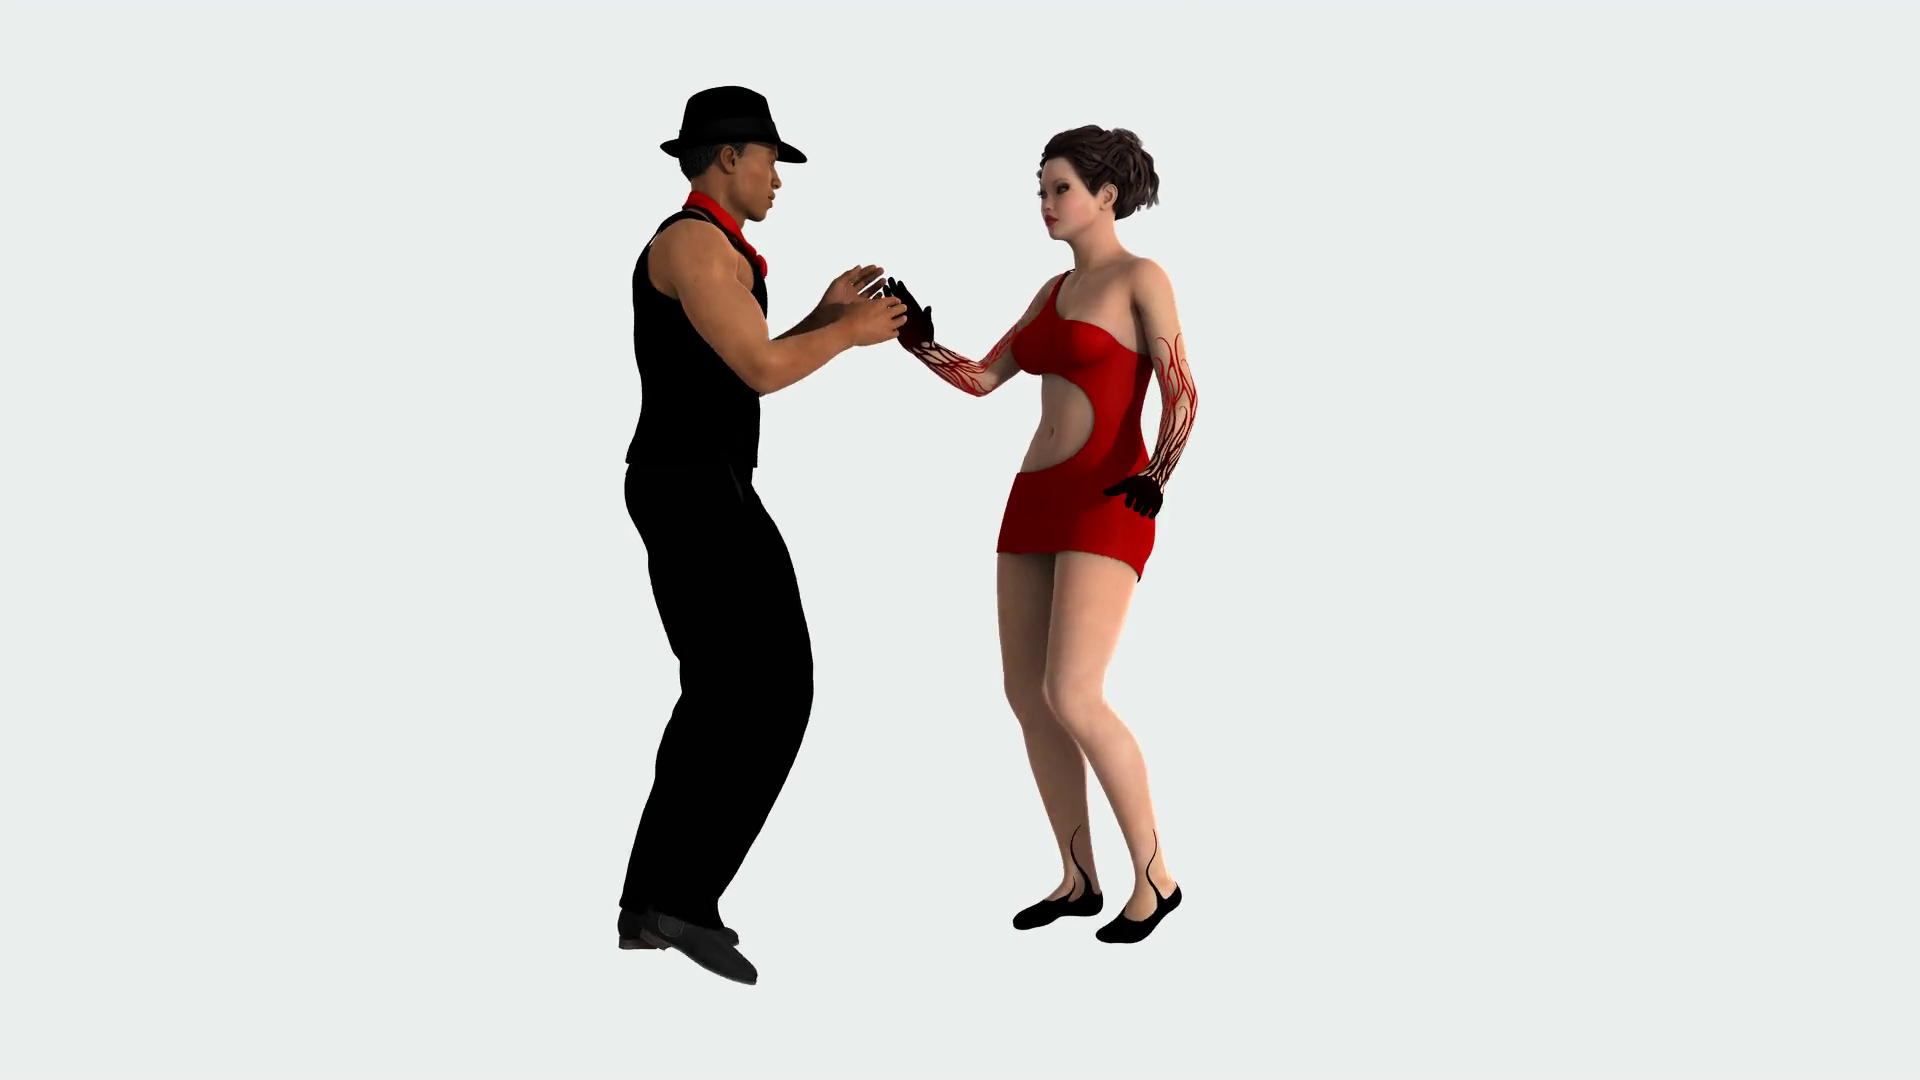 Animated Dancing PNG HD - 131060